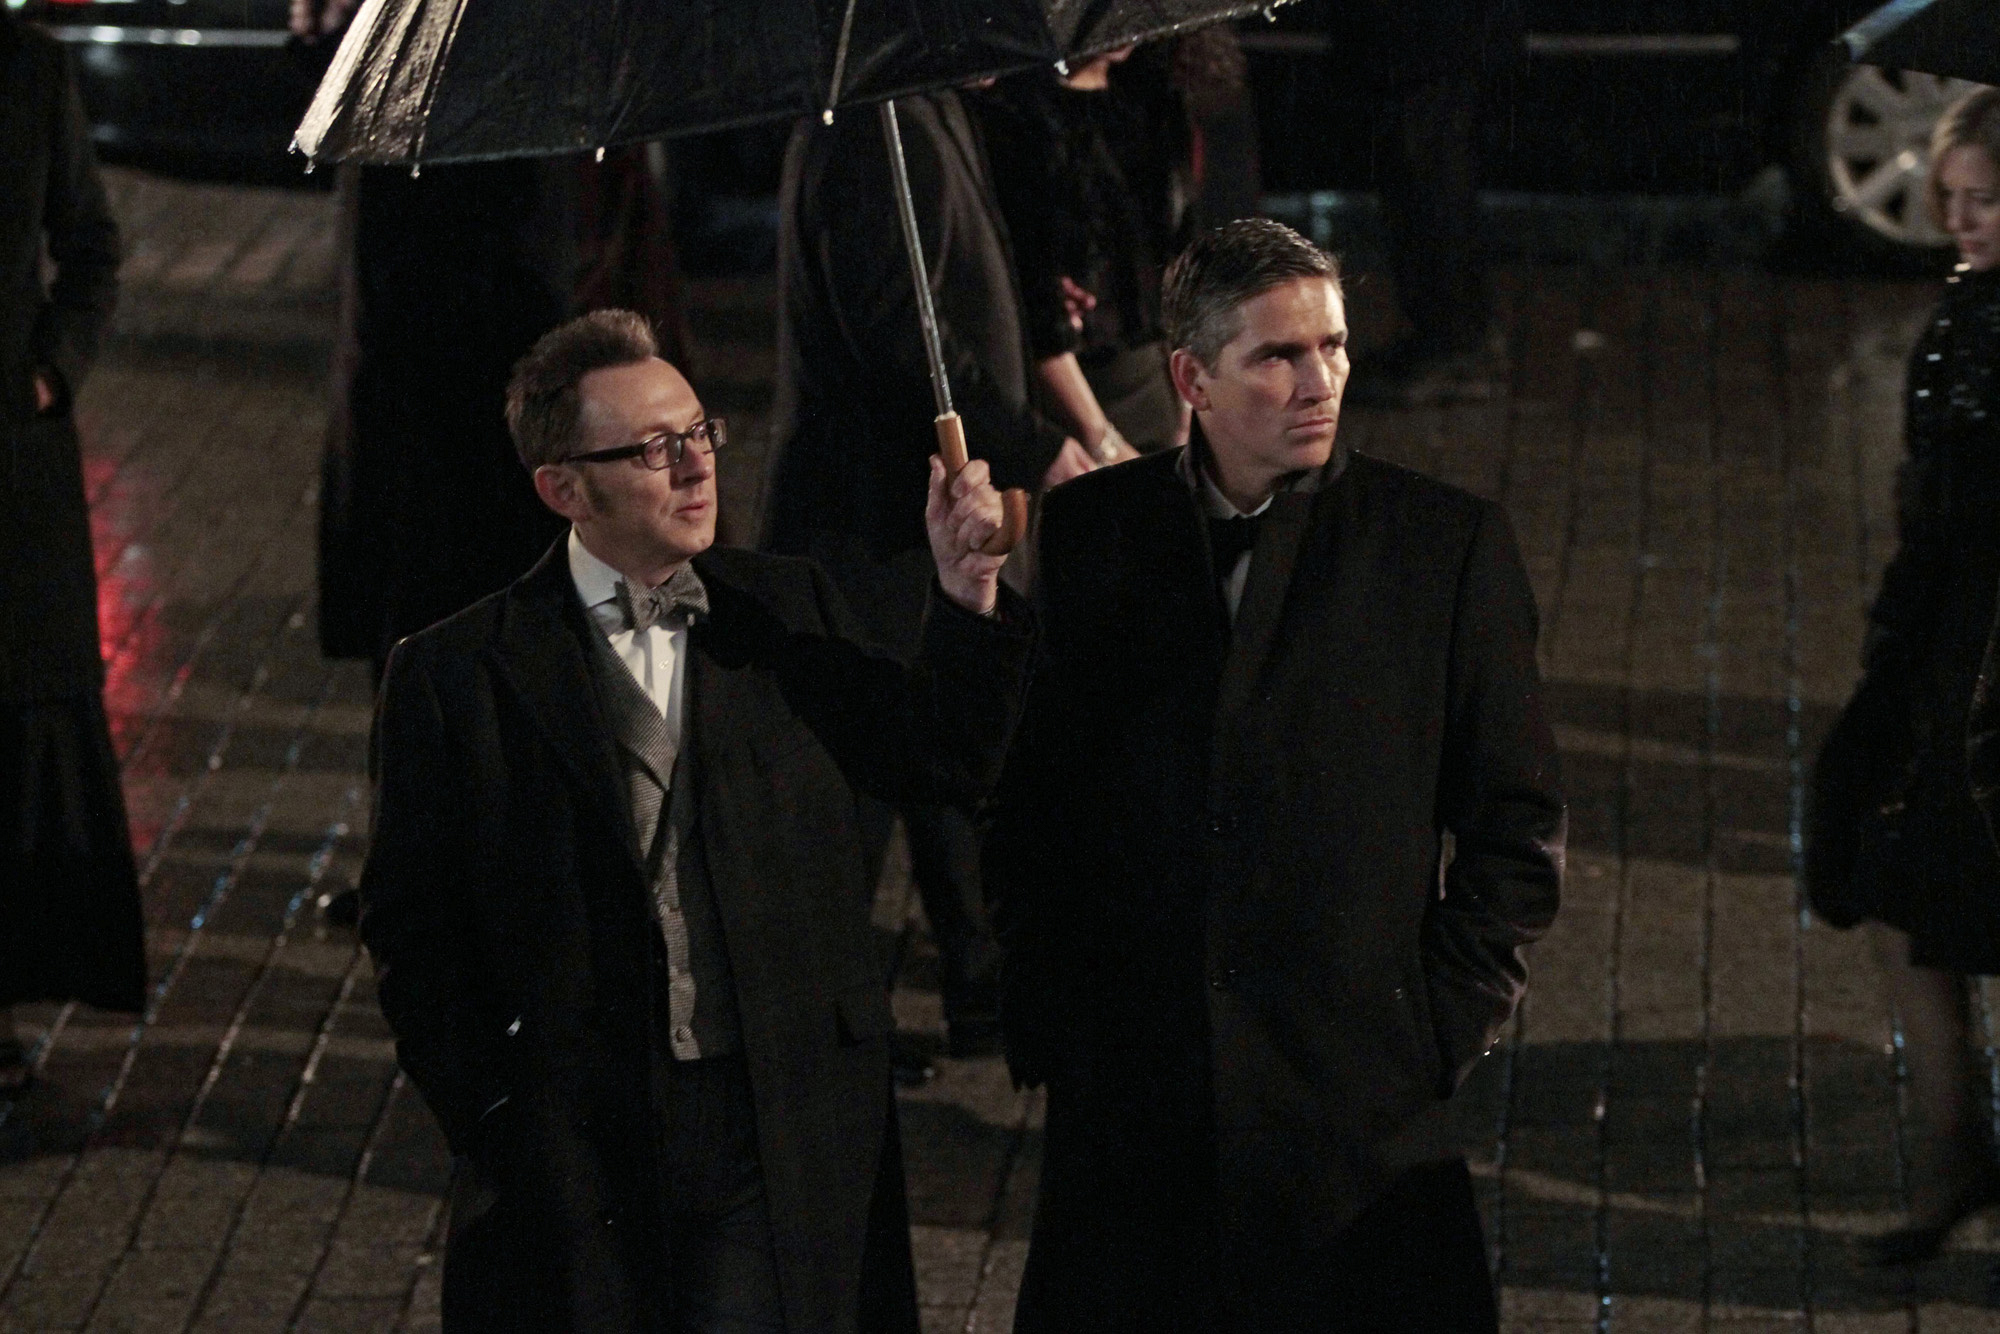 4. Reese and Finch - Person of Interest